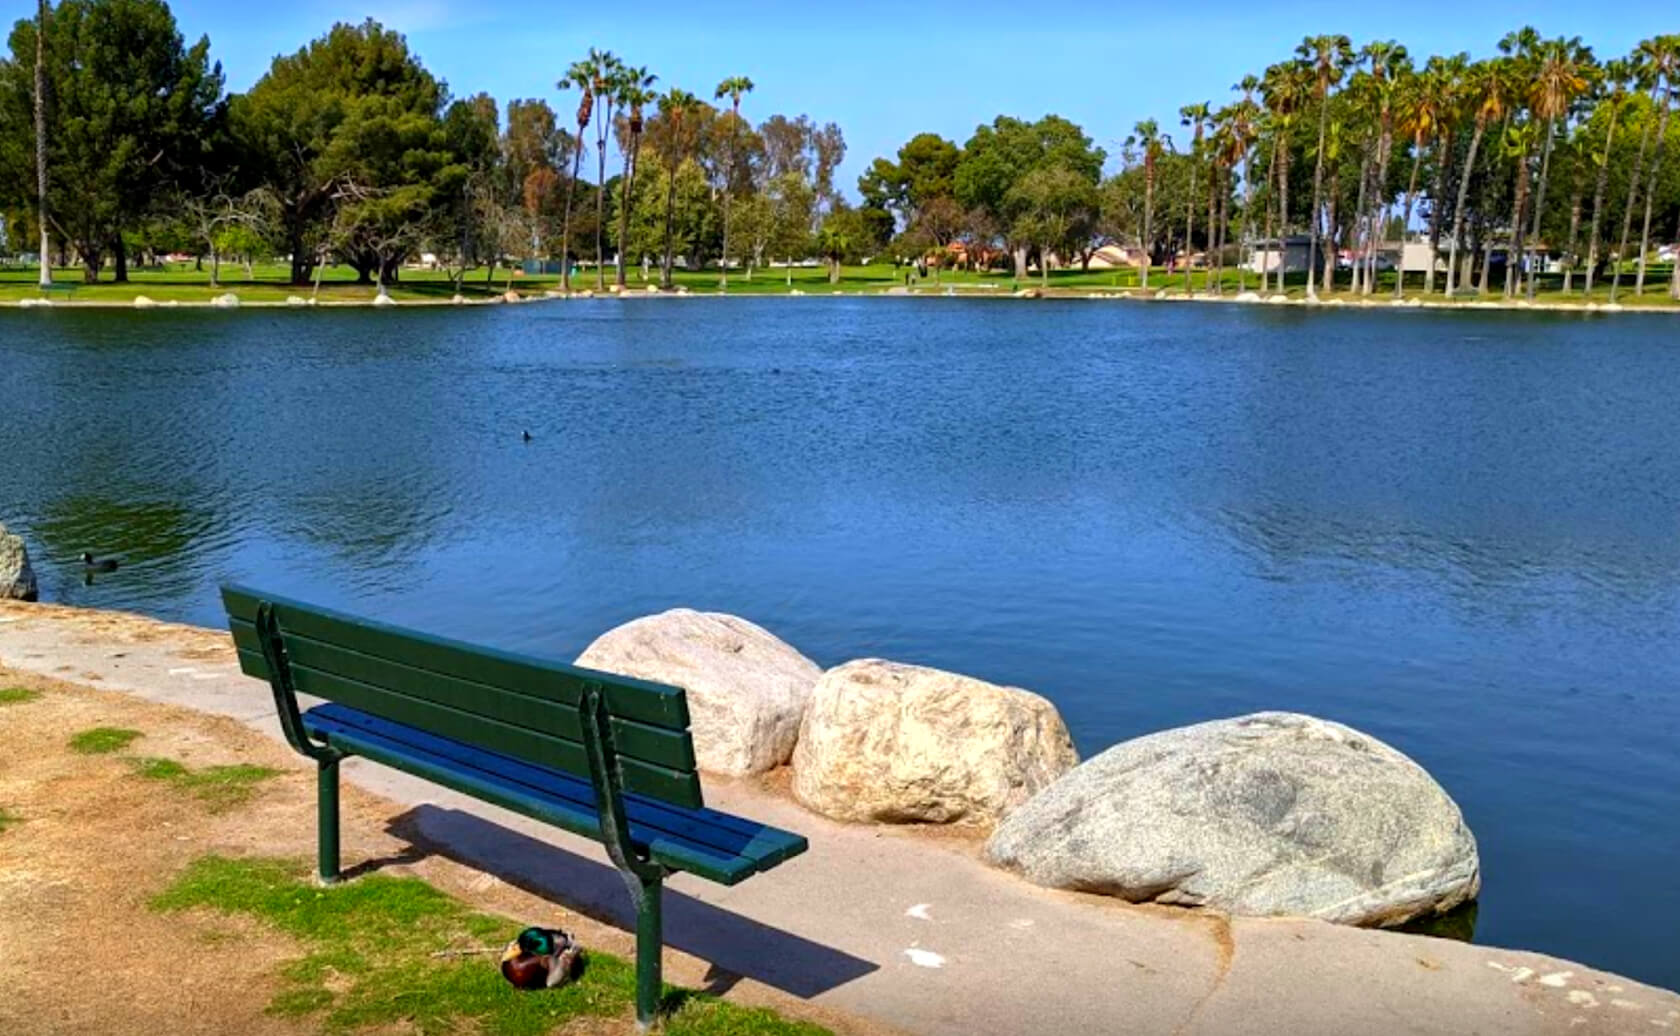 Mile-Square-Park-Lake-Fishing-Guide-Report-Fountain-Valley-CA-04